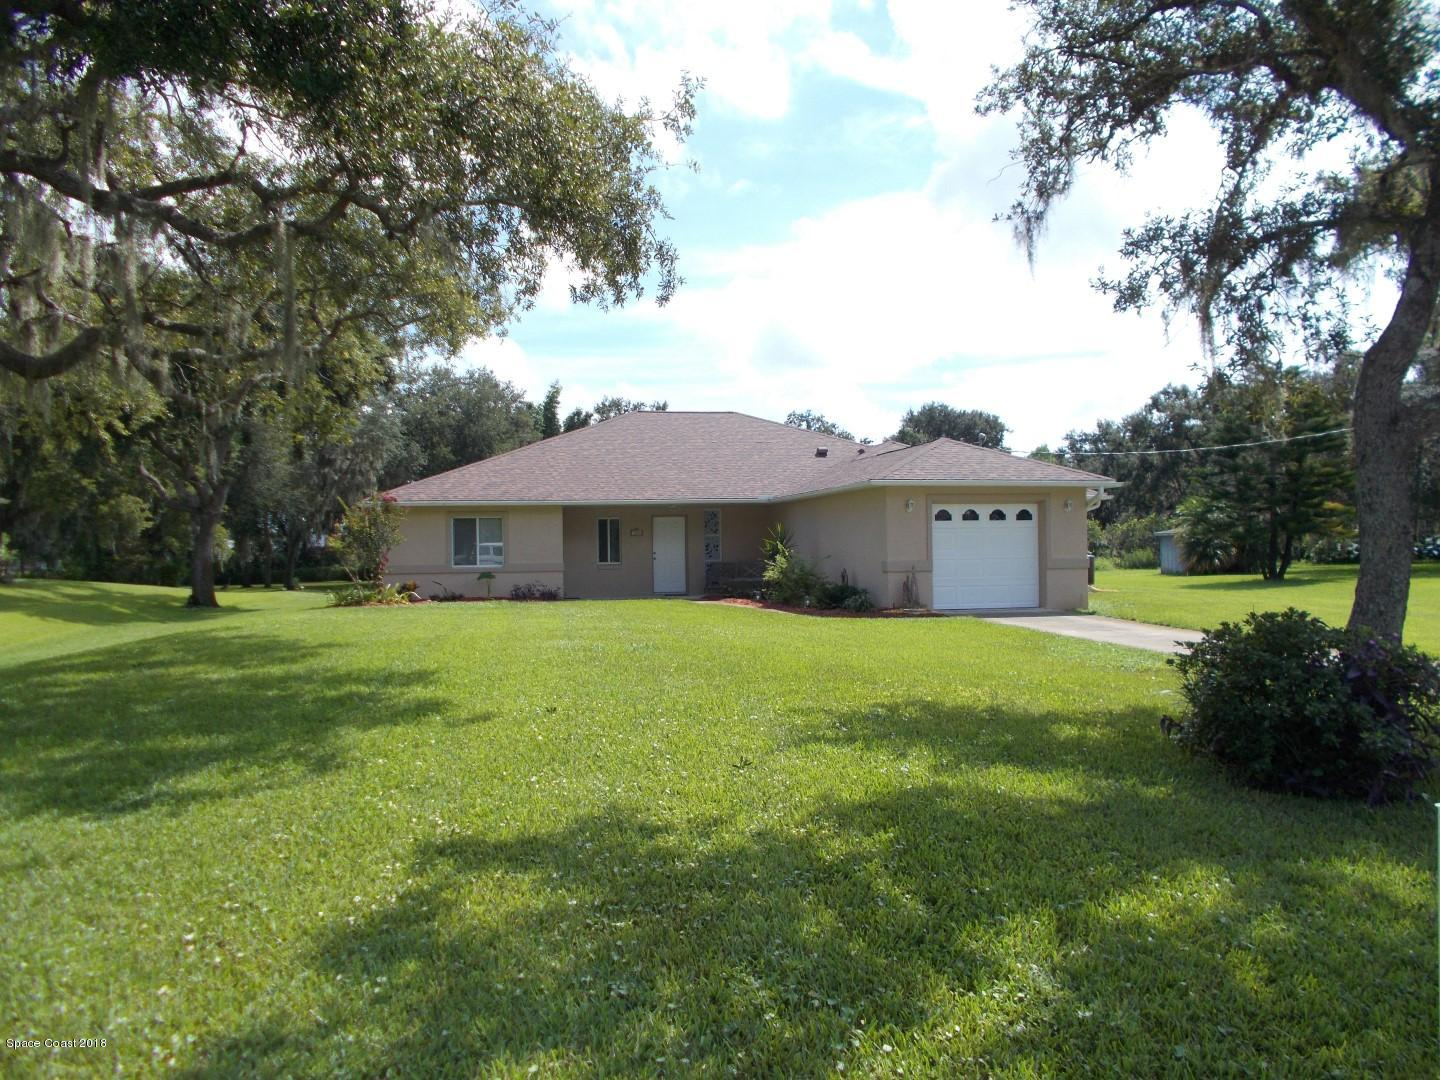 House for Sale at 309 N Gaines 309 N Gaines Oak Hill, Florida 32759 United States